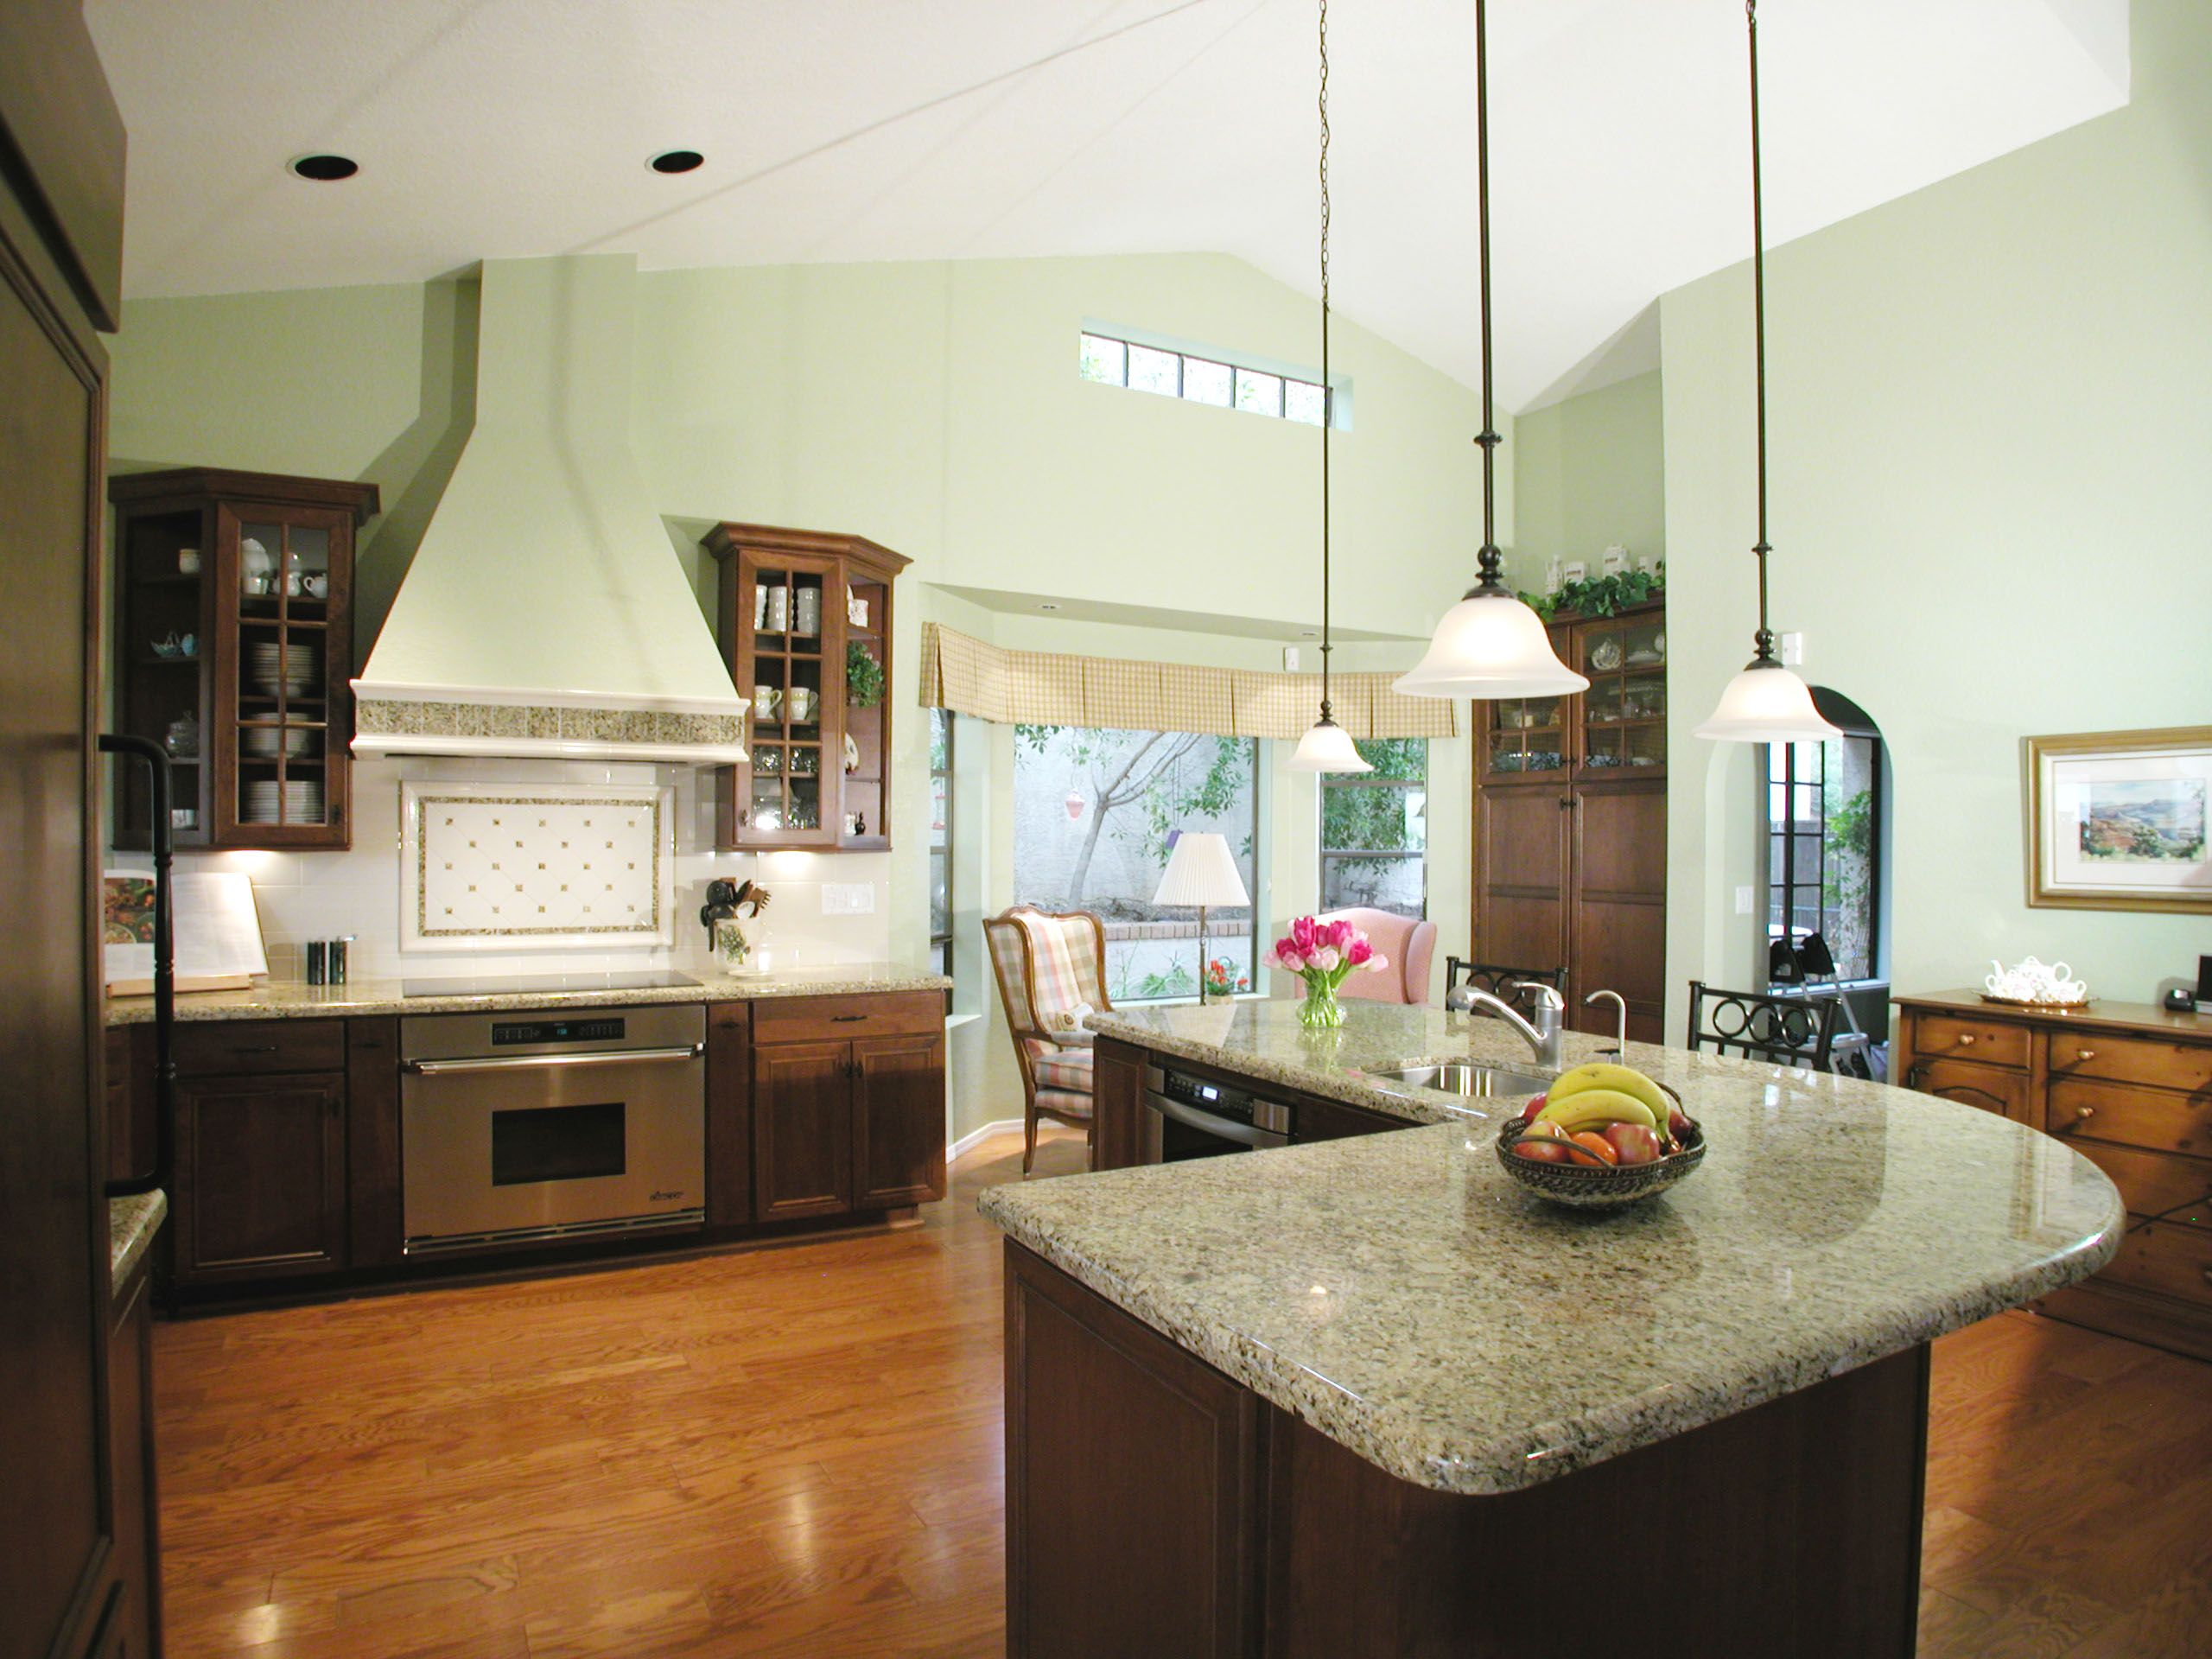 luxury kitchen island l shape design with cream granite countertop